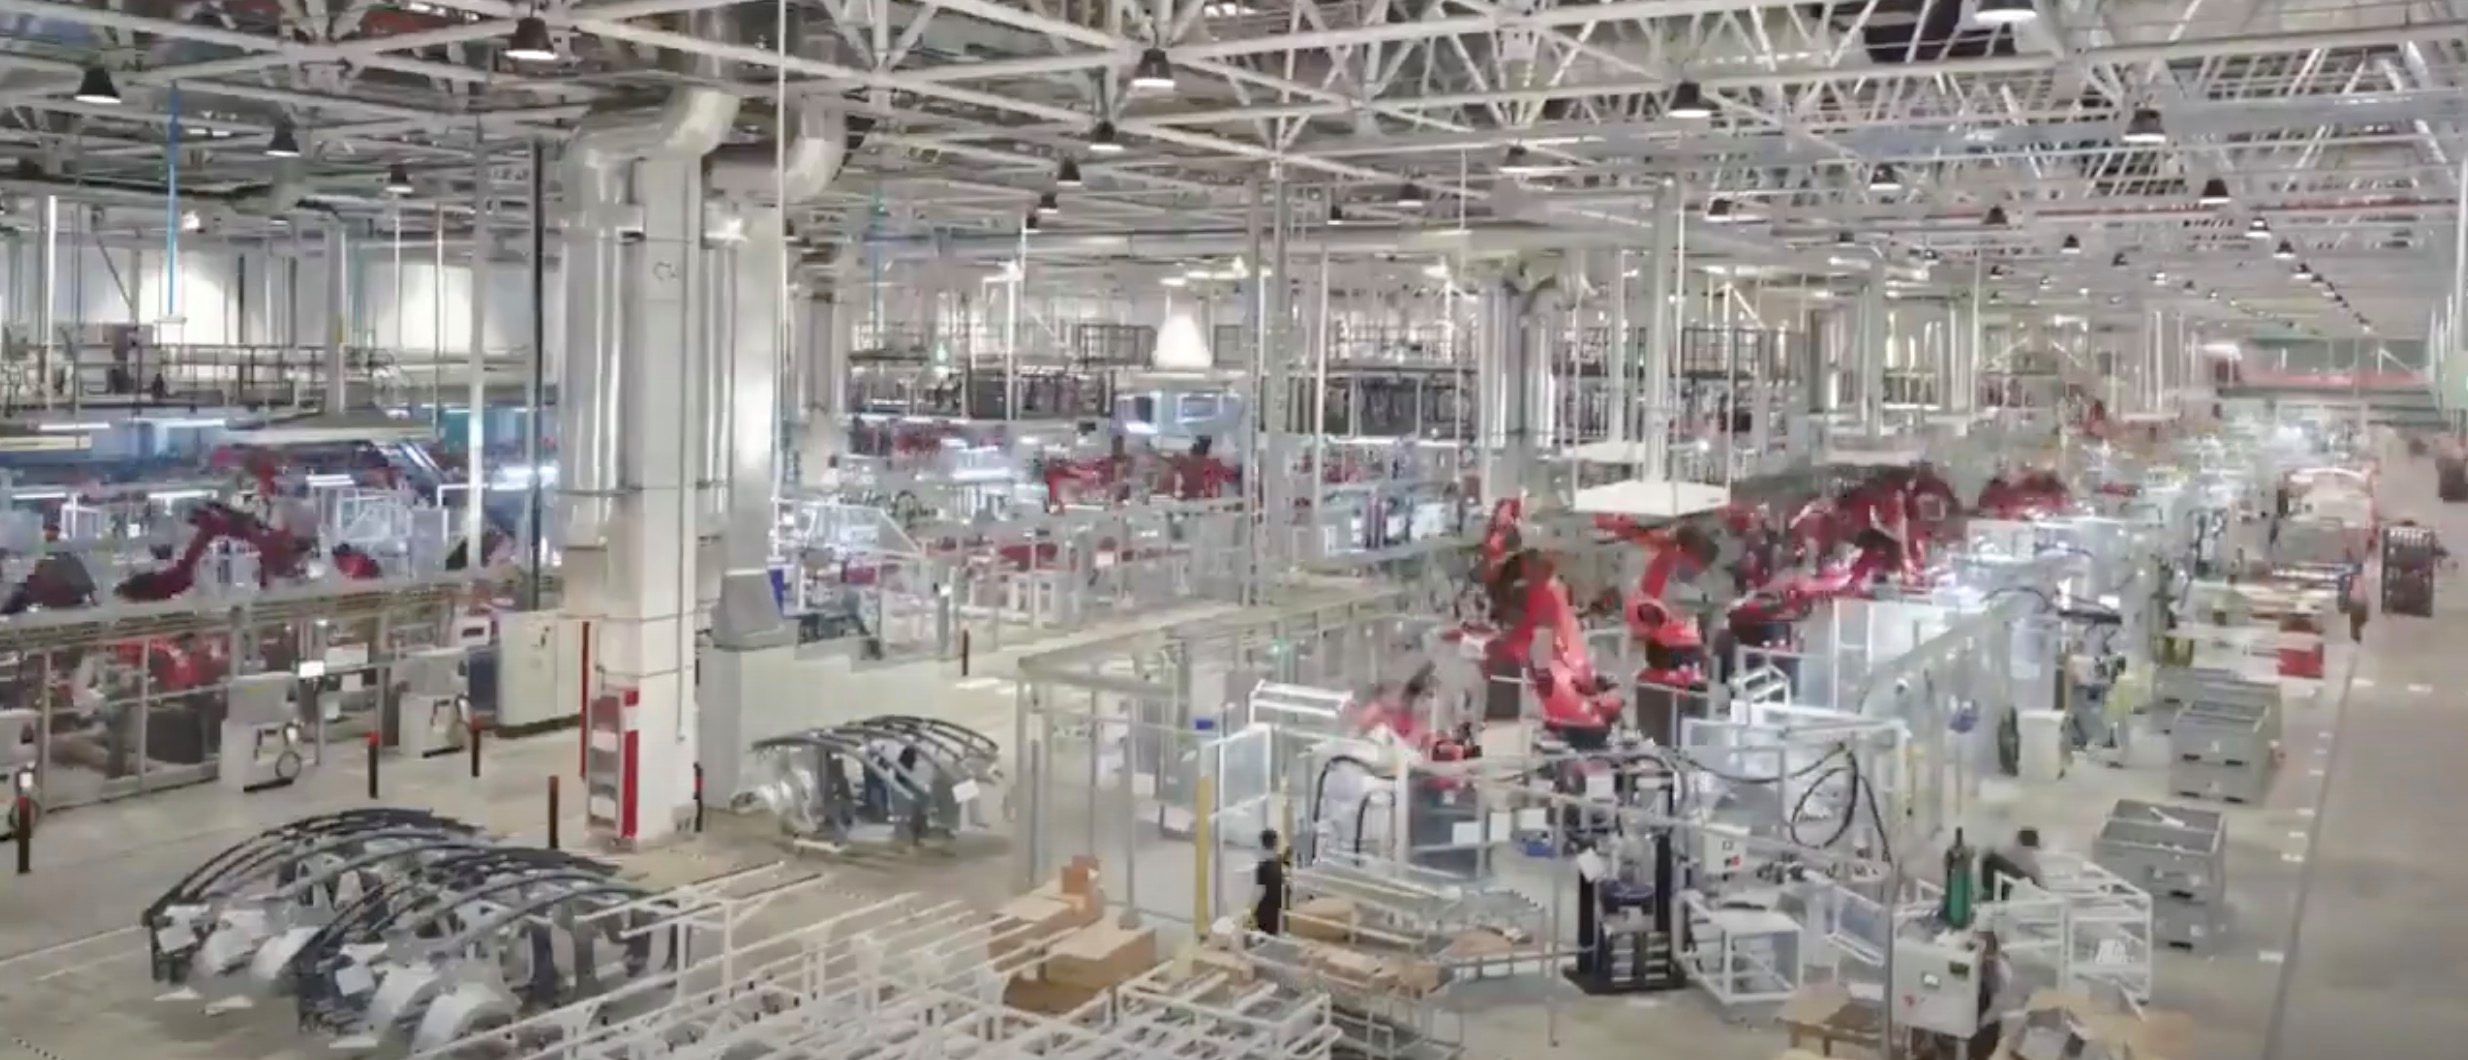 Tesla releases impressive video of production at Gigafactory Shanghai - a glimpse of 'Alien dreadnought'